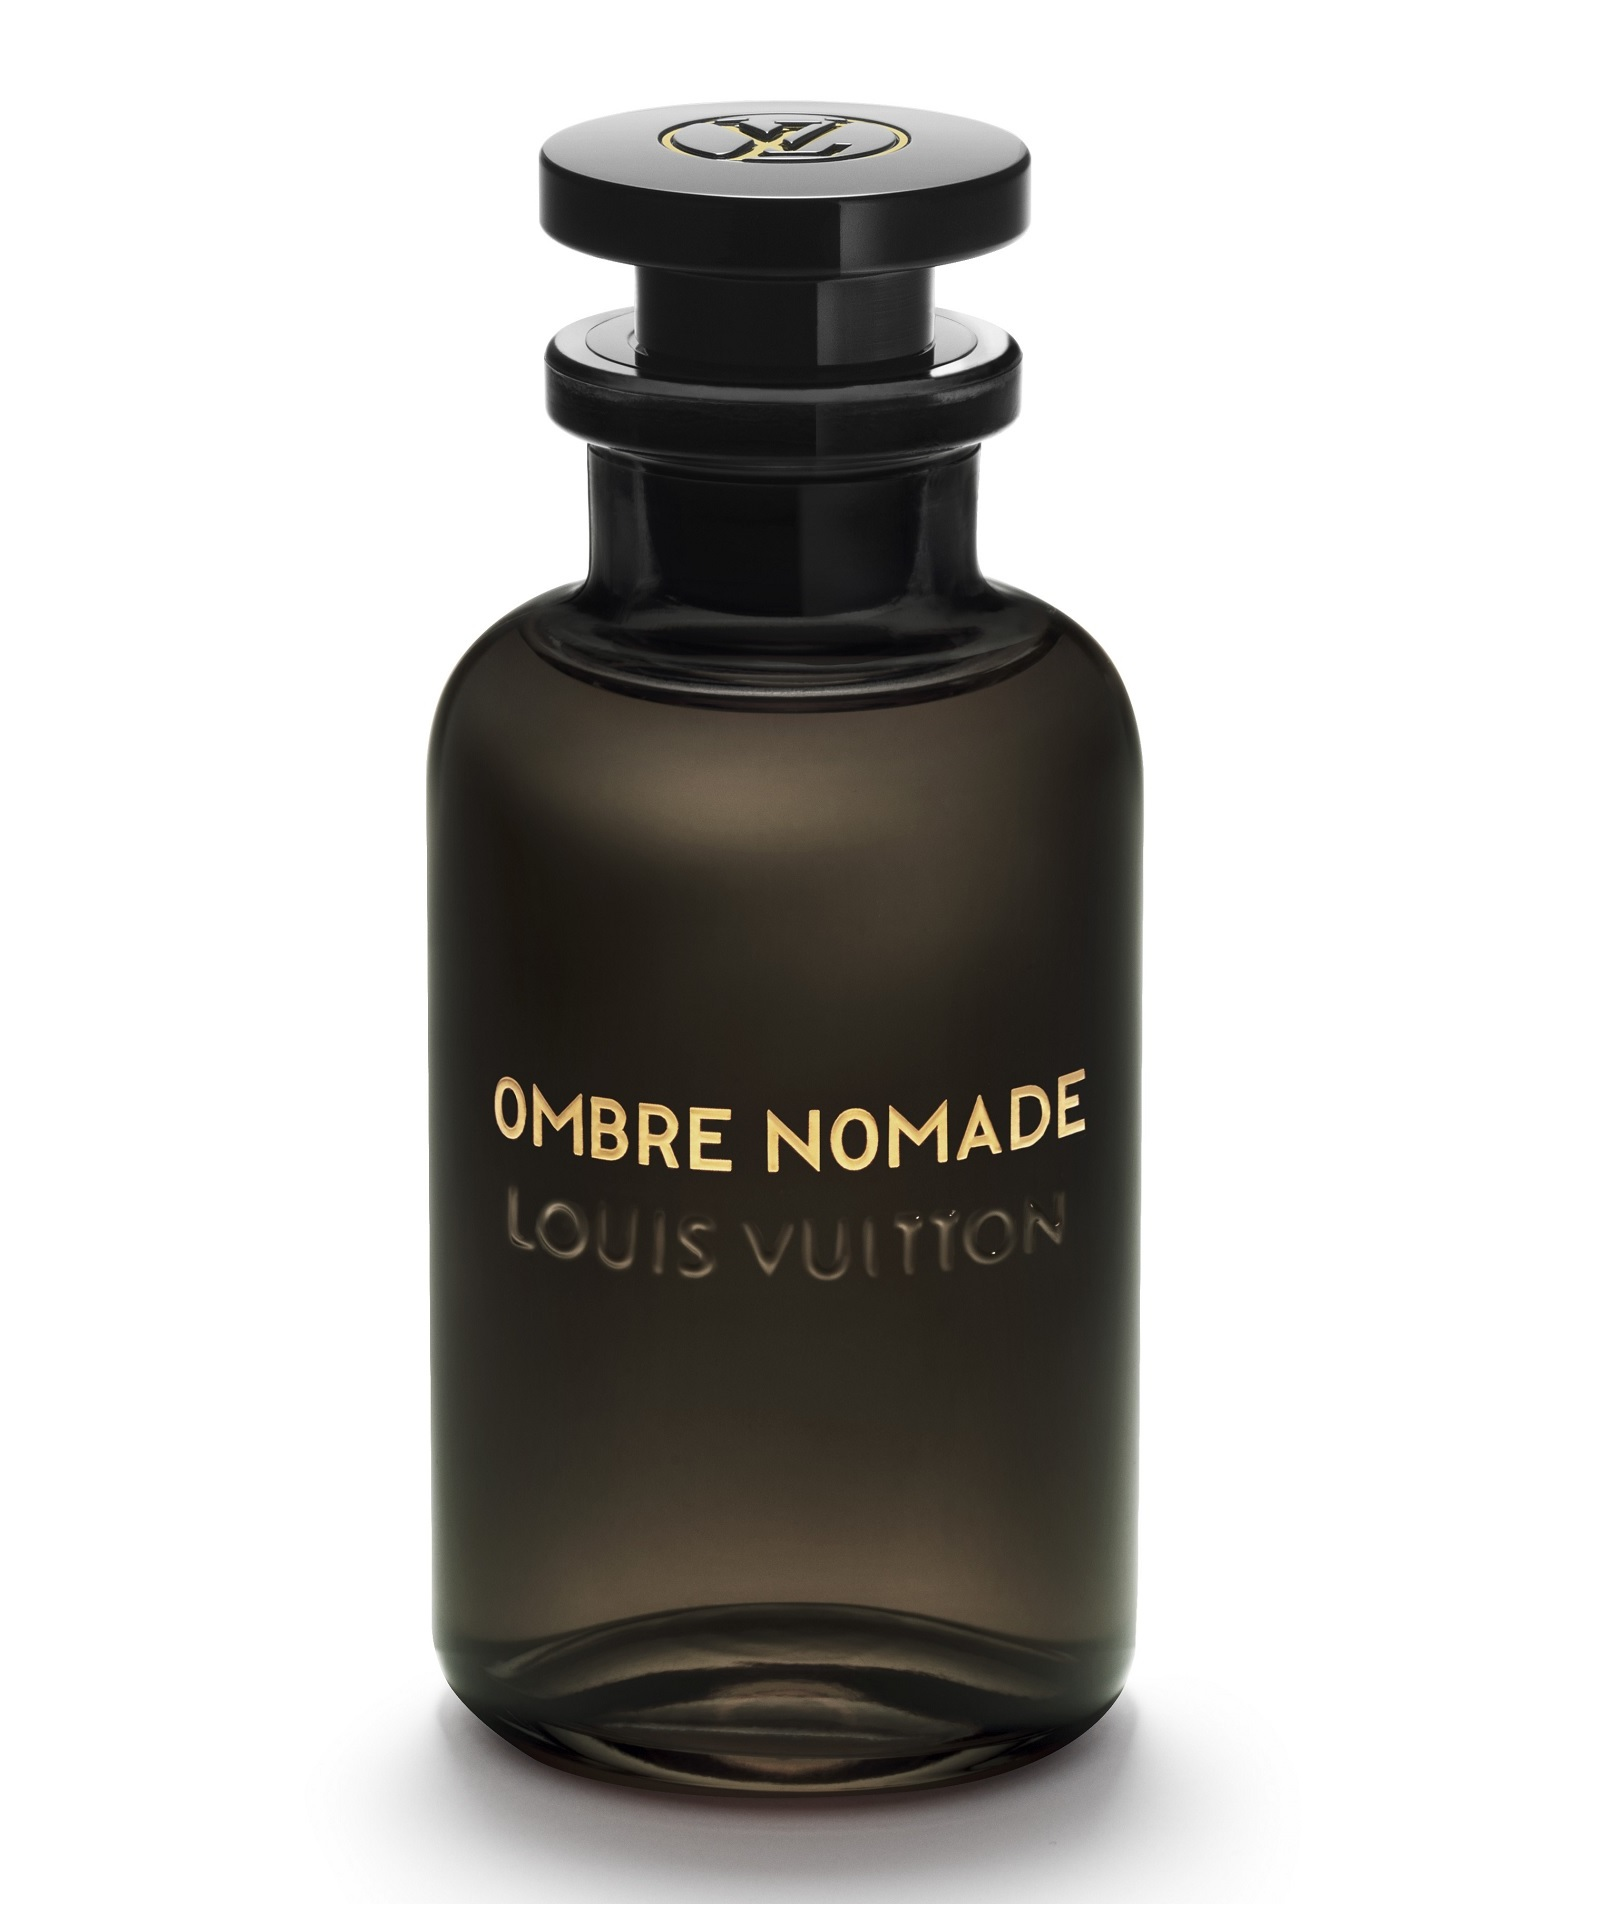 56a8d2bdd Ombre Nomade Louis Vuitton perfume - a new fragrance for women and men 2018